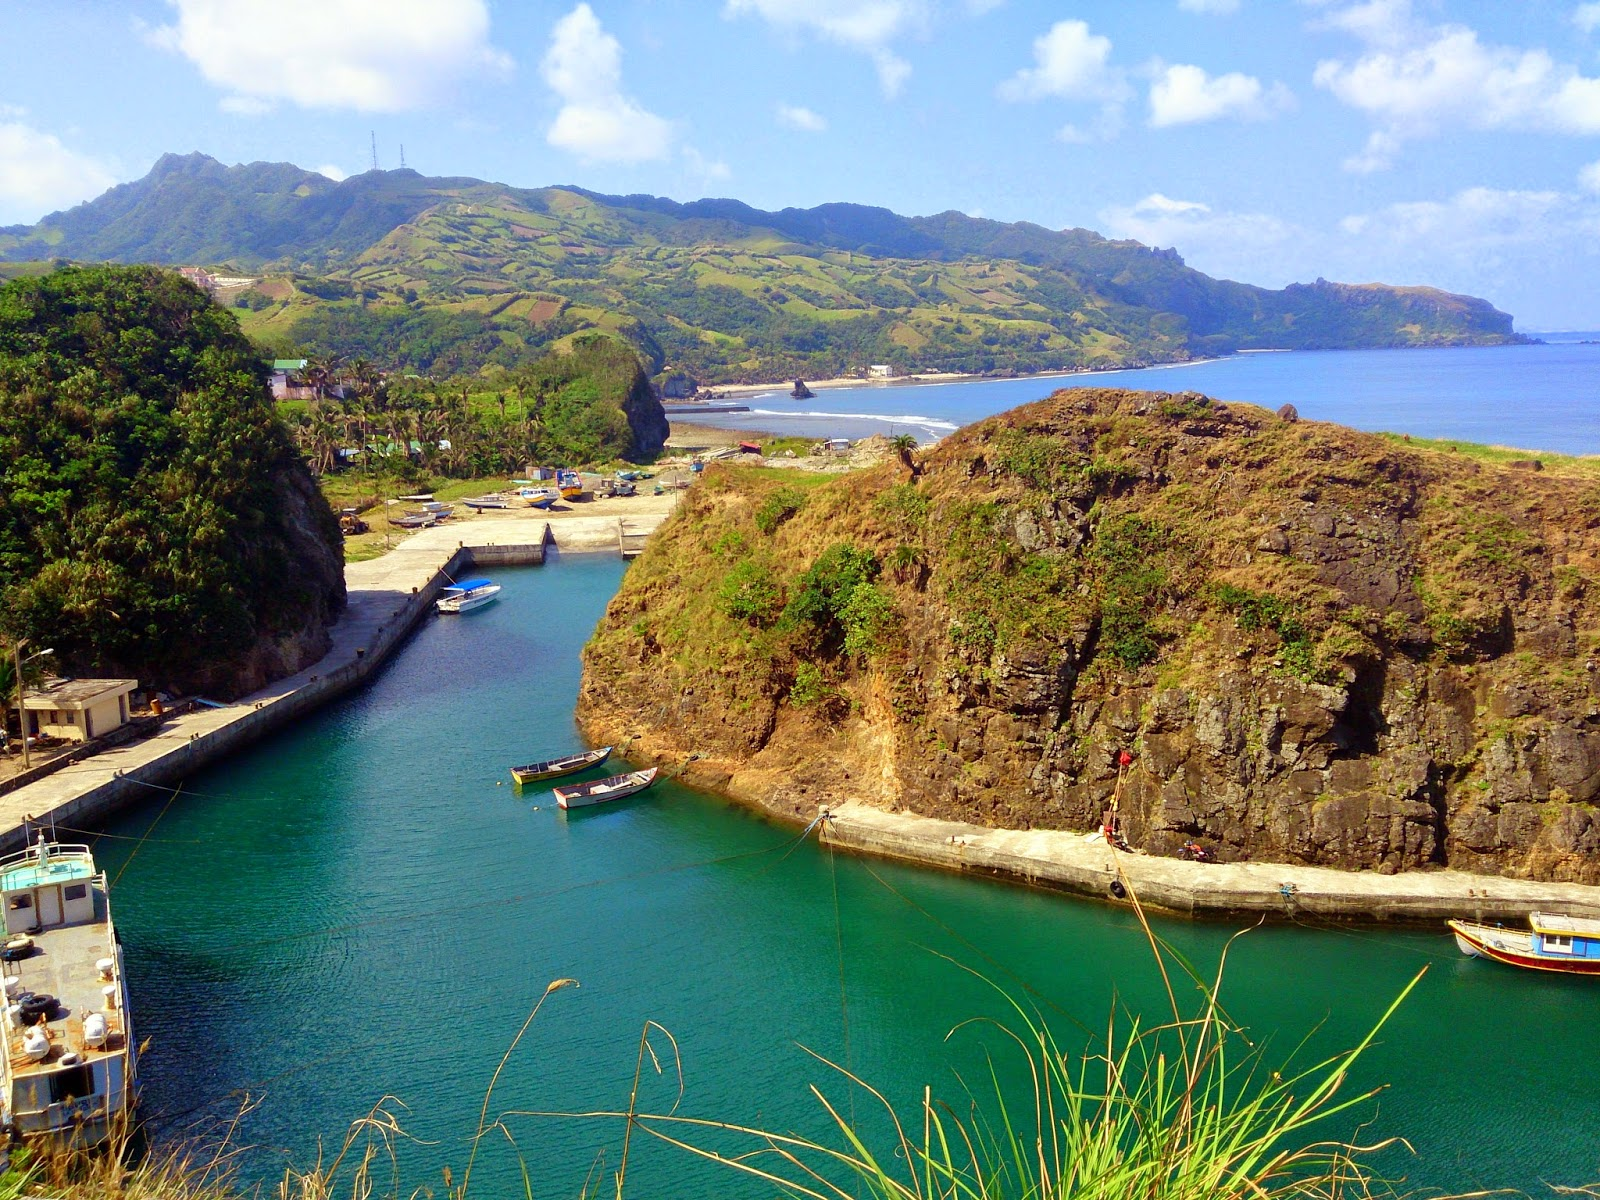 Mahatao View Deck, South Batan, Batanes